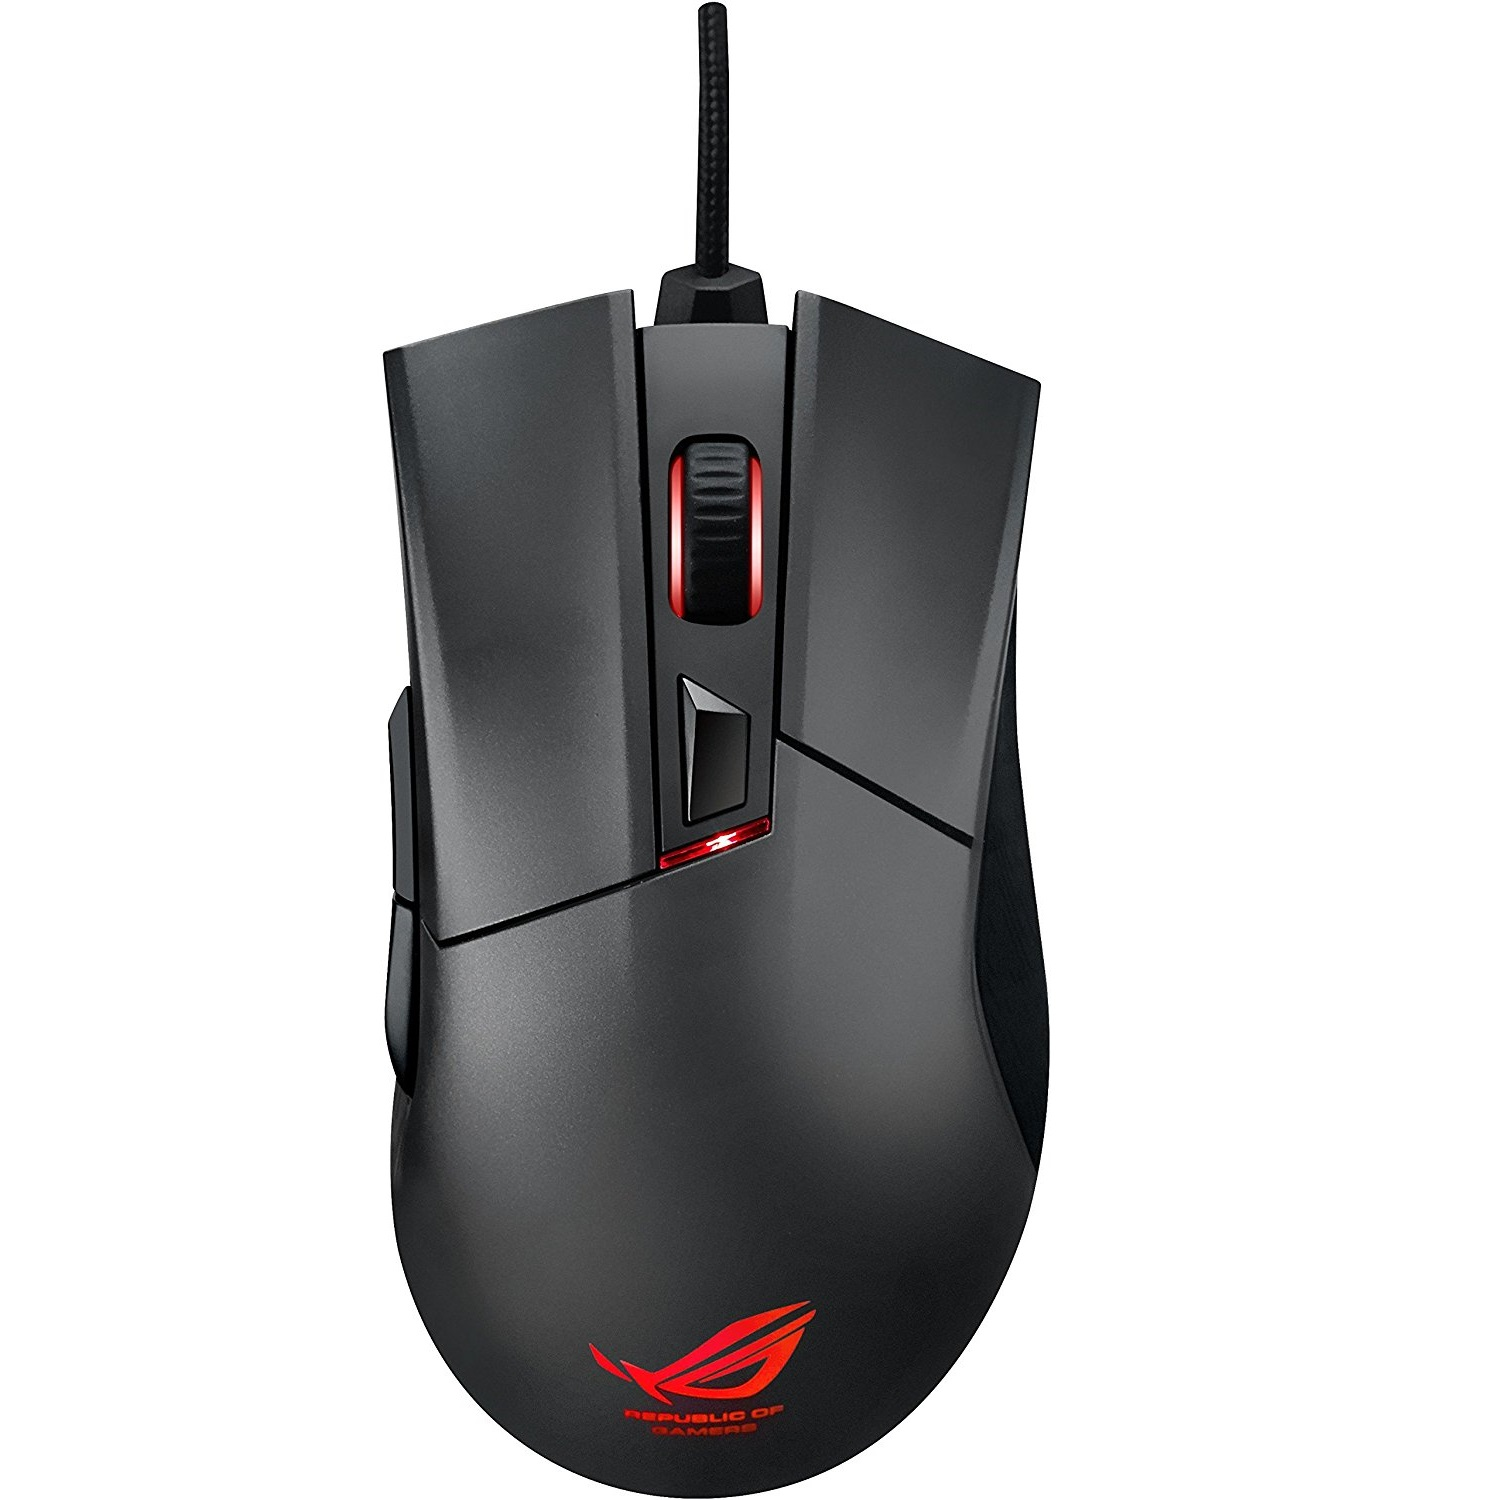 ASUS-ROG-Gladius-II-2-Aura-Sync-Wired-PNK-Wireless-Gaming-Mouse-All-Models-AW Indexbild 16